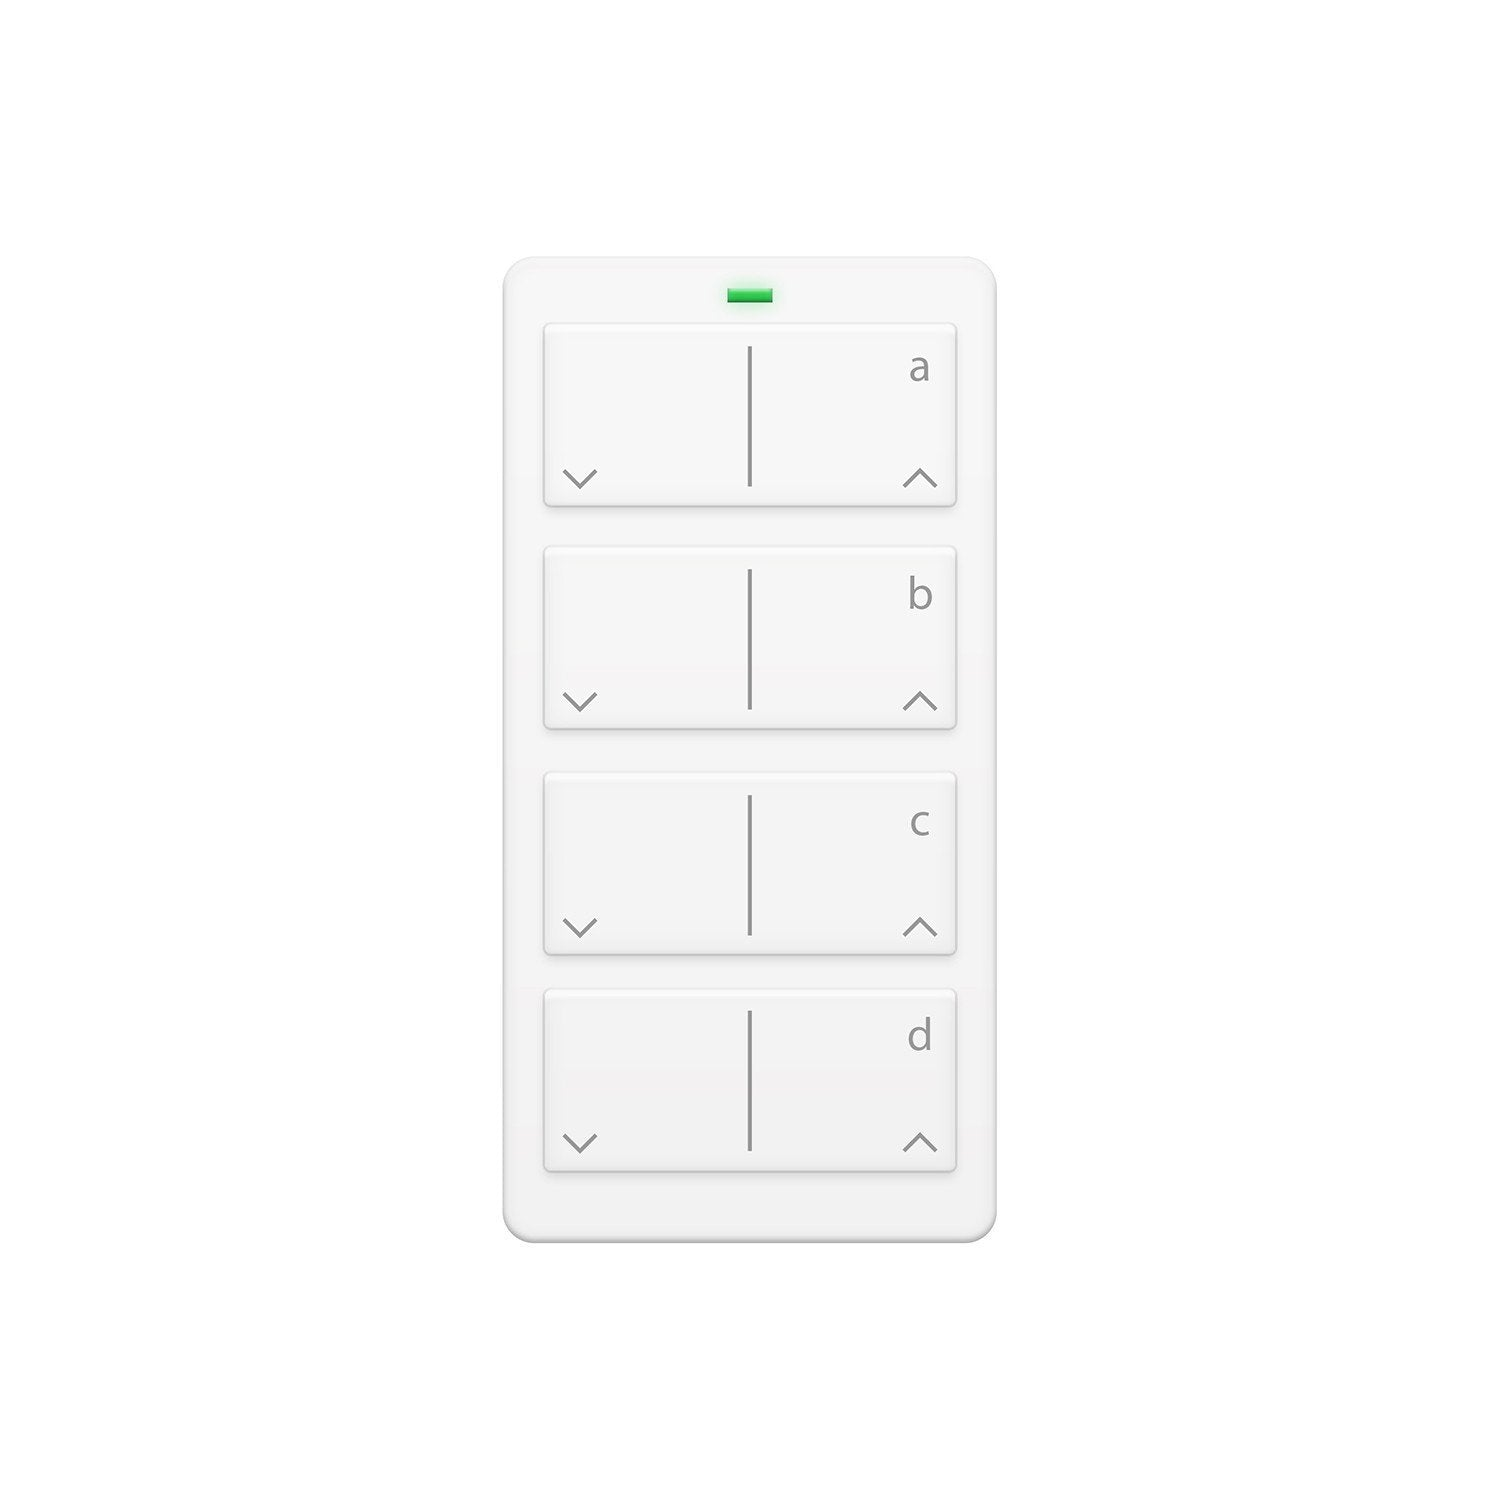 Insteon Mini Remote Control Keypad, 4-Scene